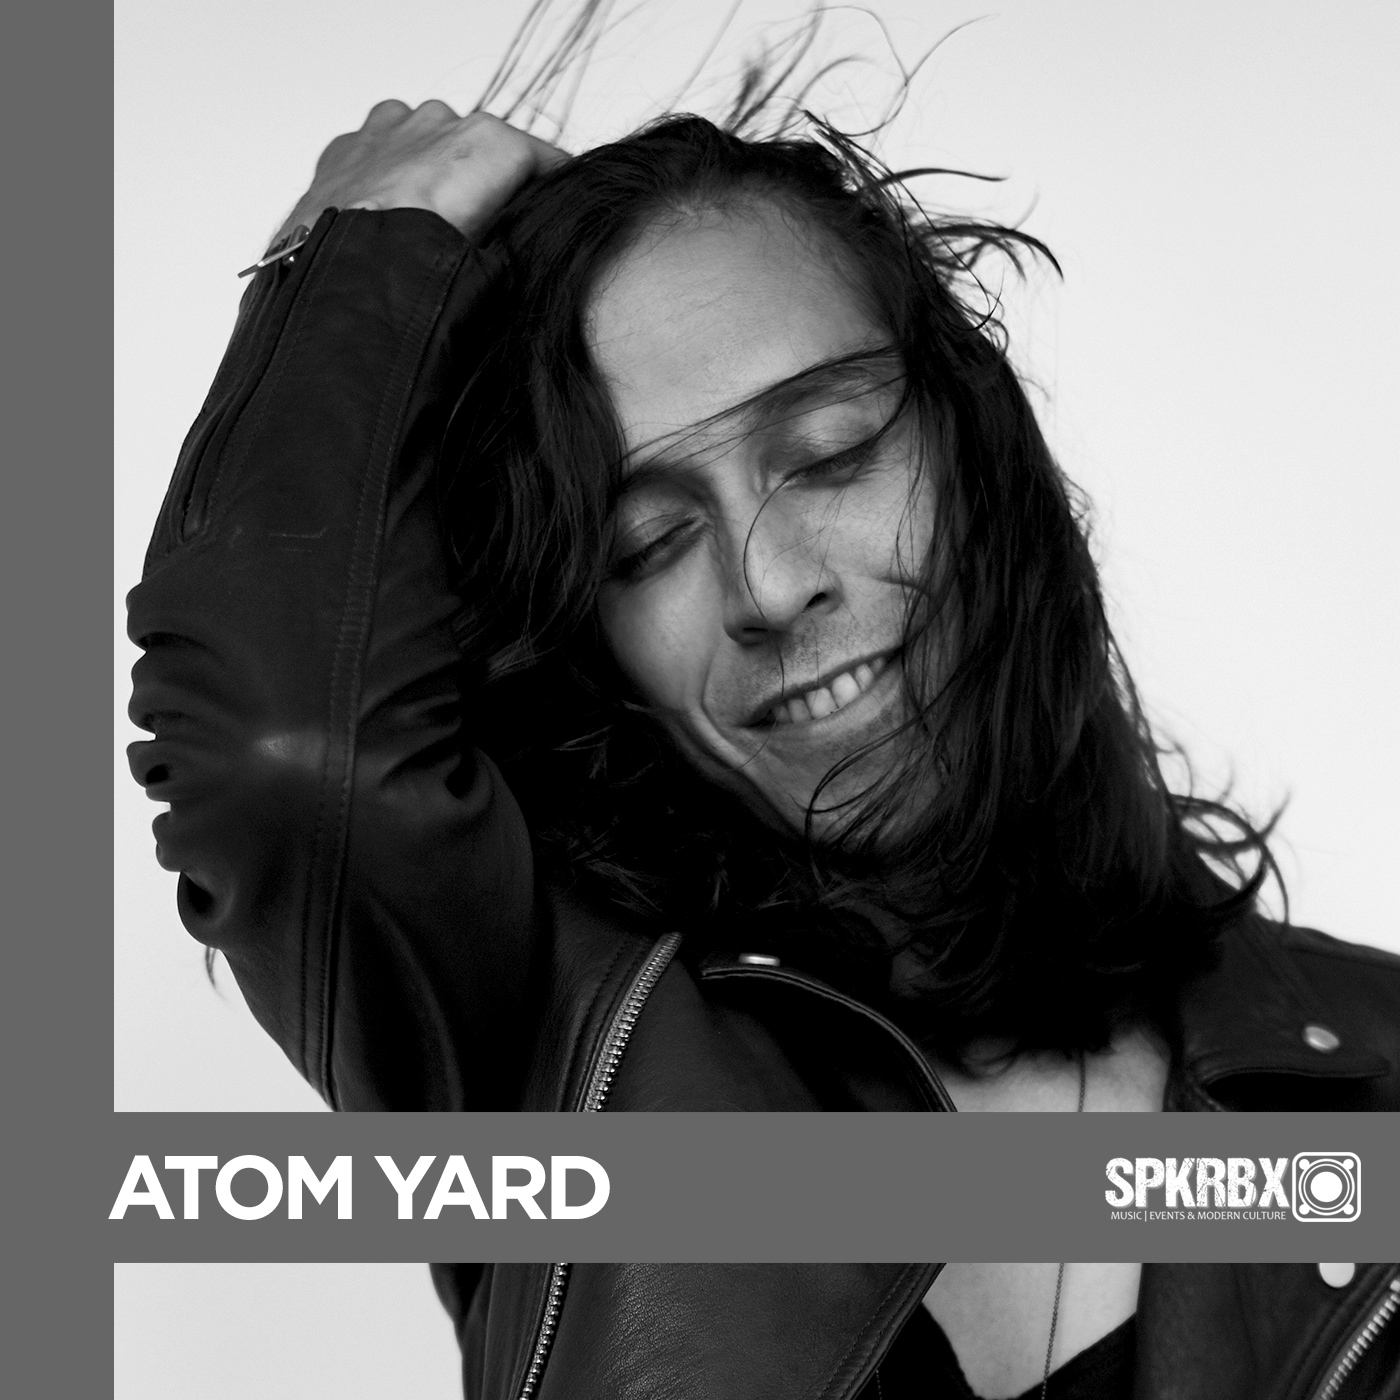 THE COLLECTIVE SERIES: Speakerbox – Atom Yard